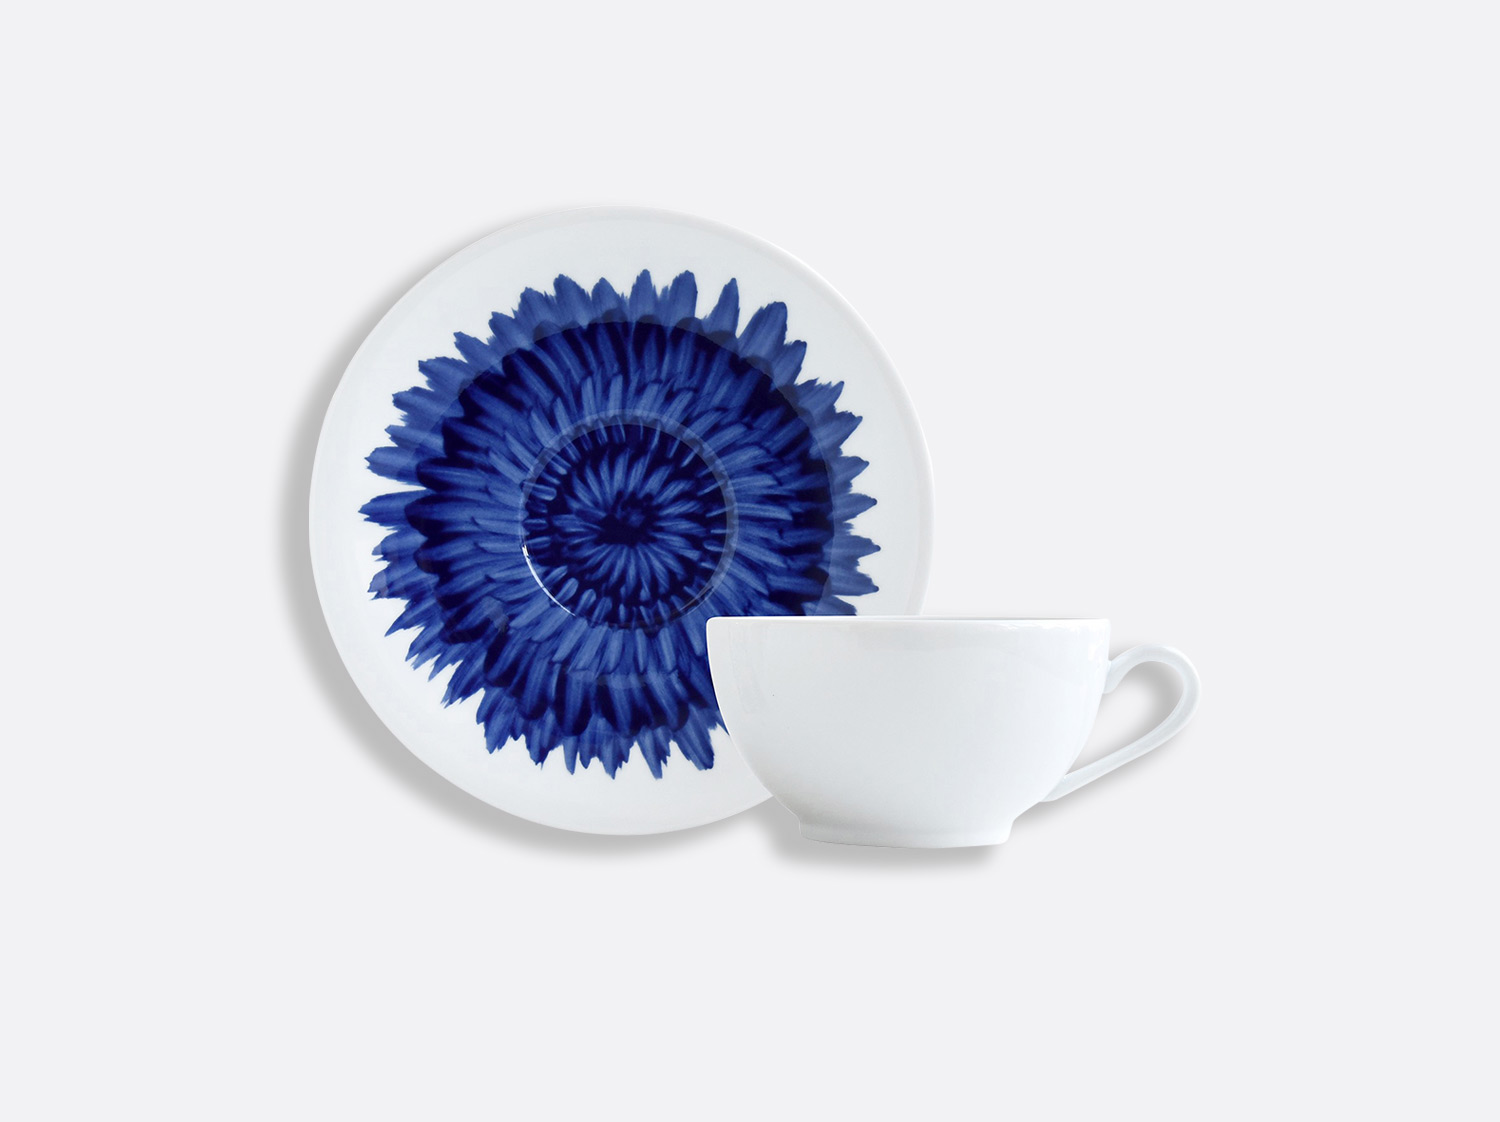 China Breakfast cup and saucer of the collection IN BLOOM - Zemer Peled | Bernardaud